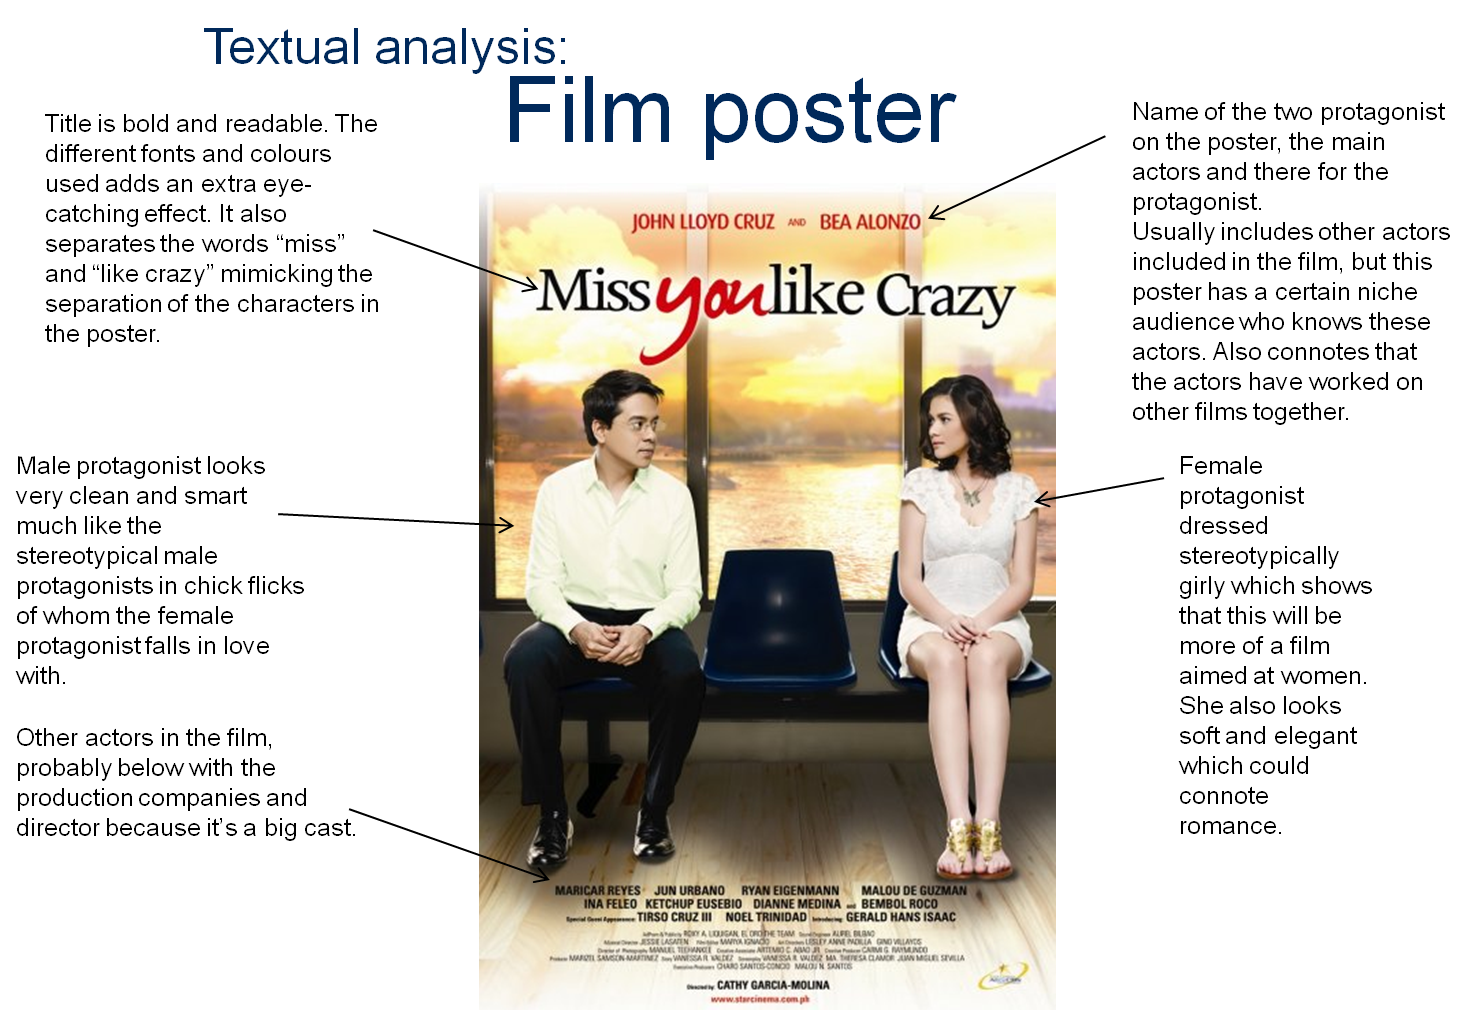 Textual Analysis Film Poster Miss You Like Crazy